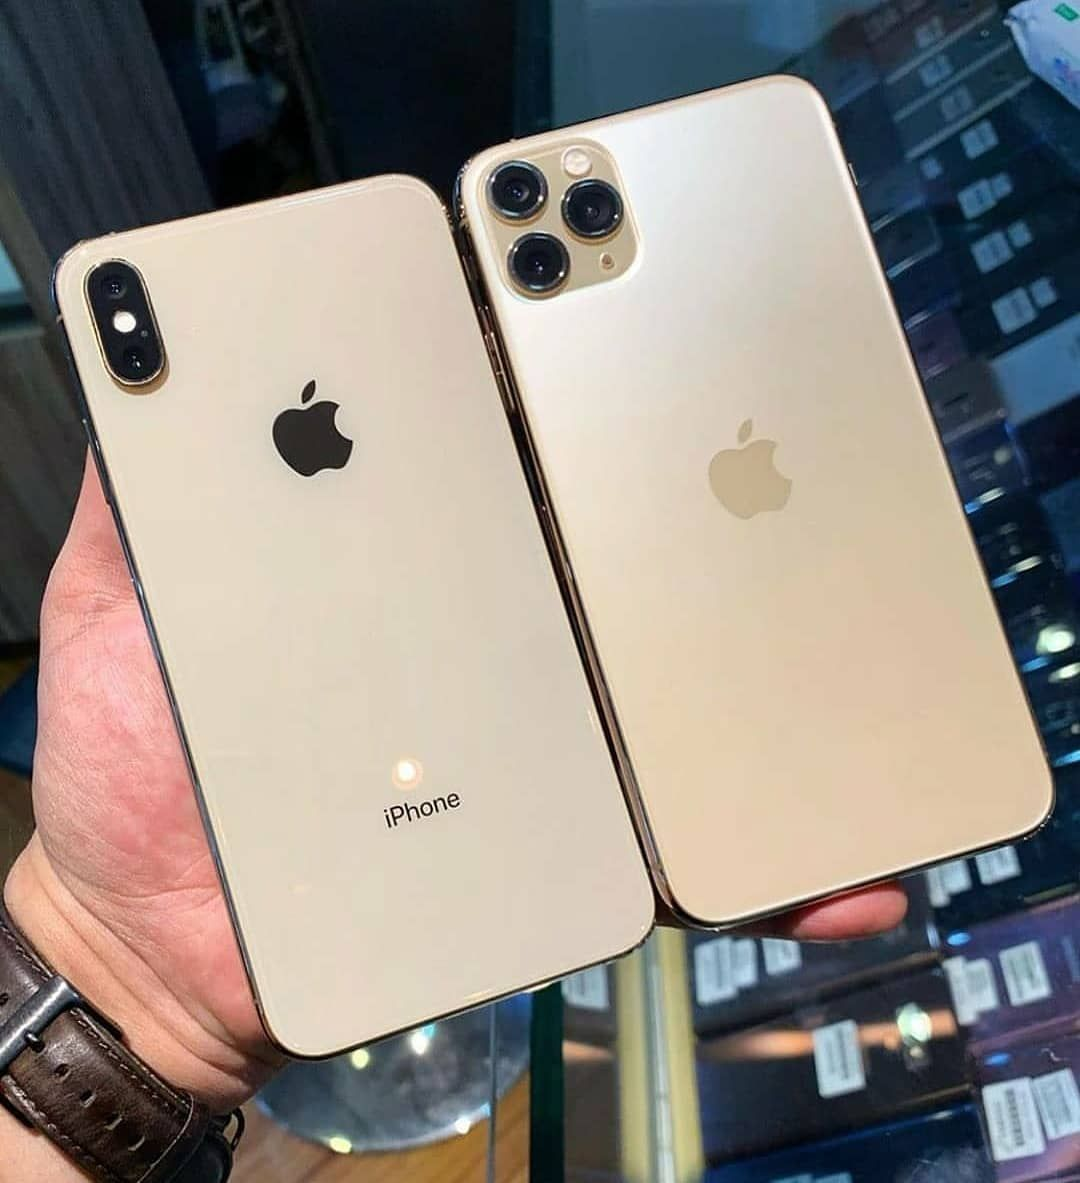 Reversetech On Instagram Iphone Xs Max Or Iphone 11pro Max